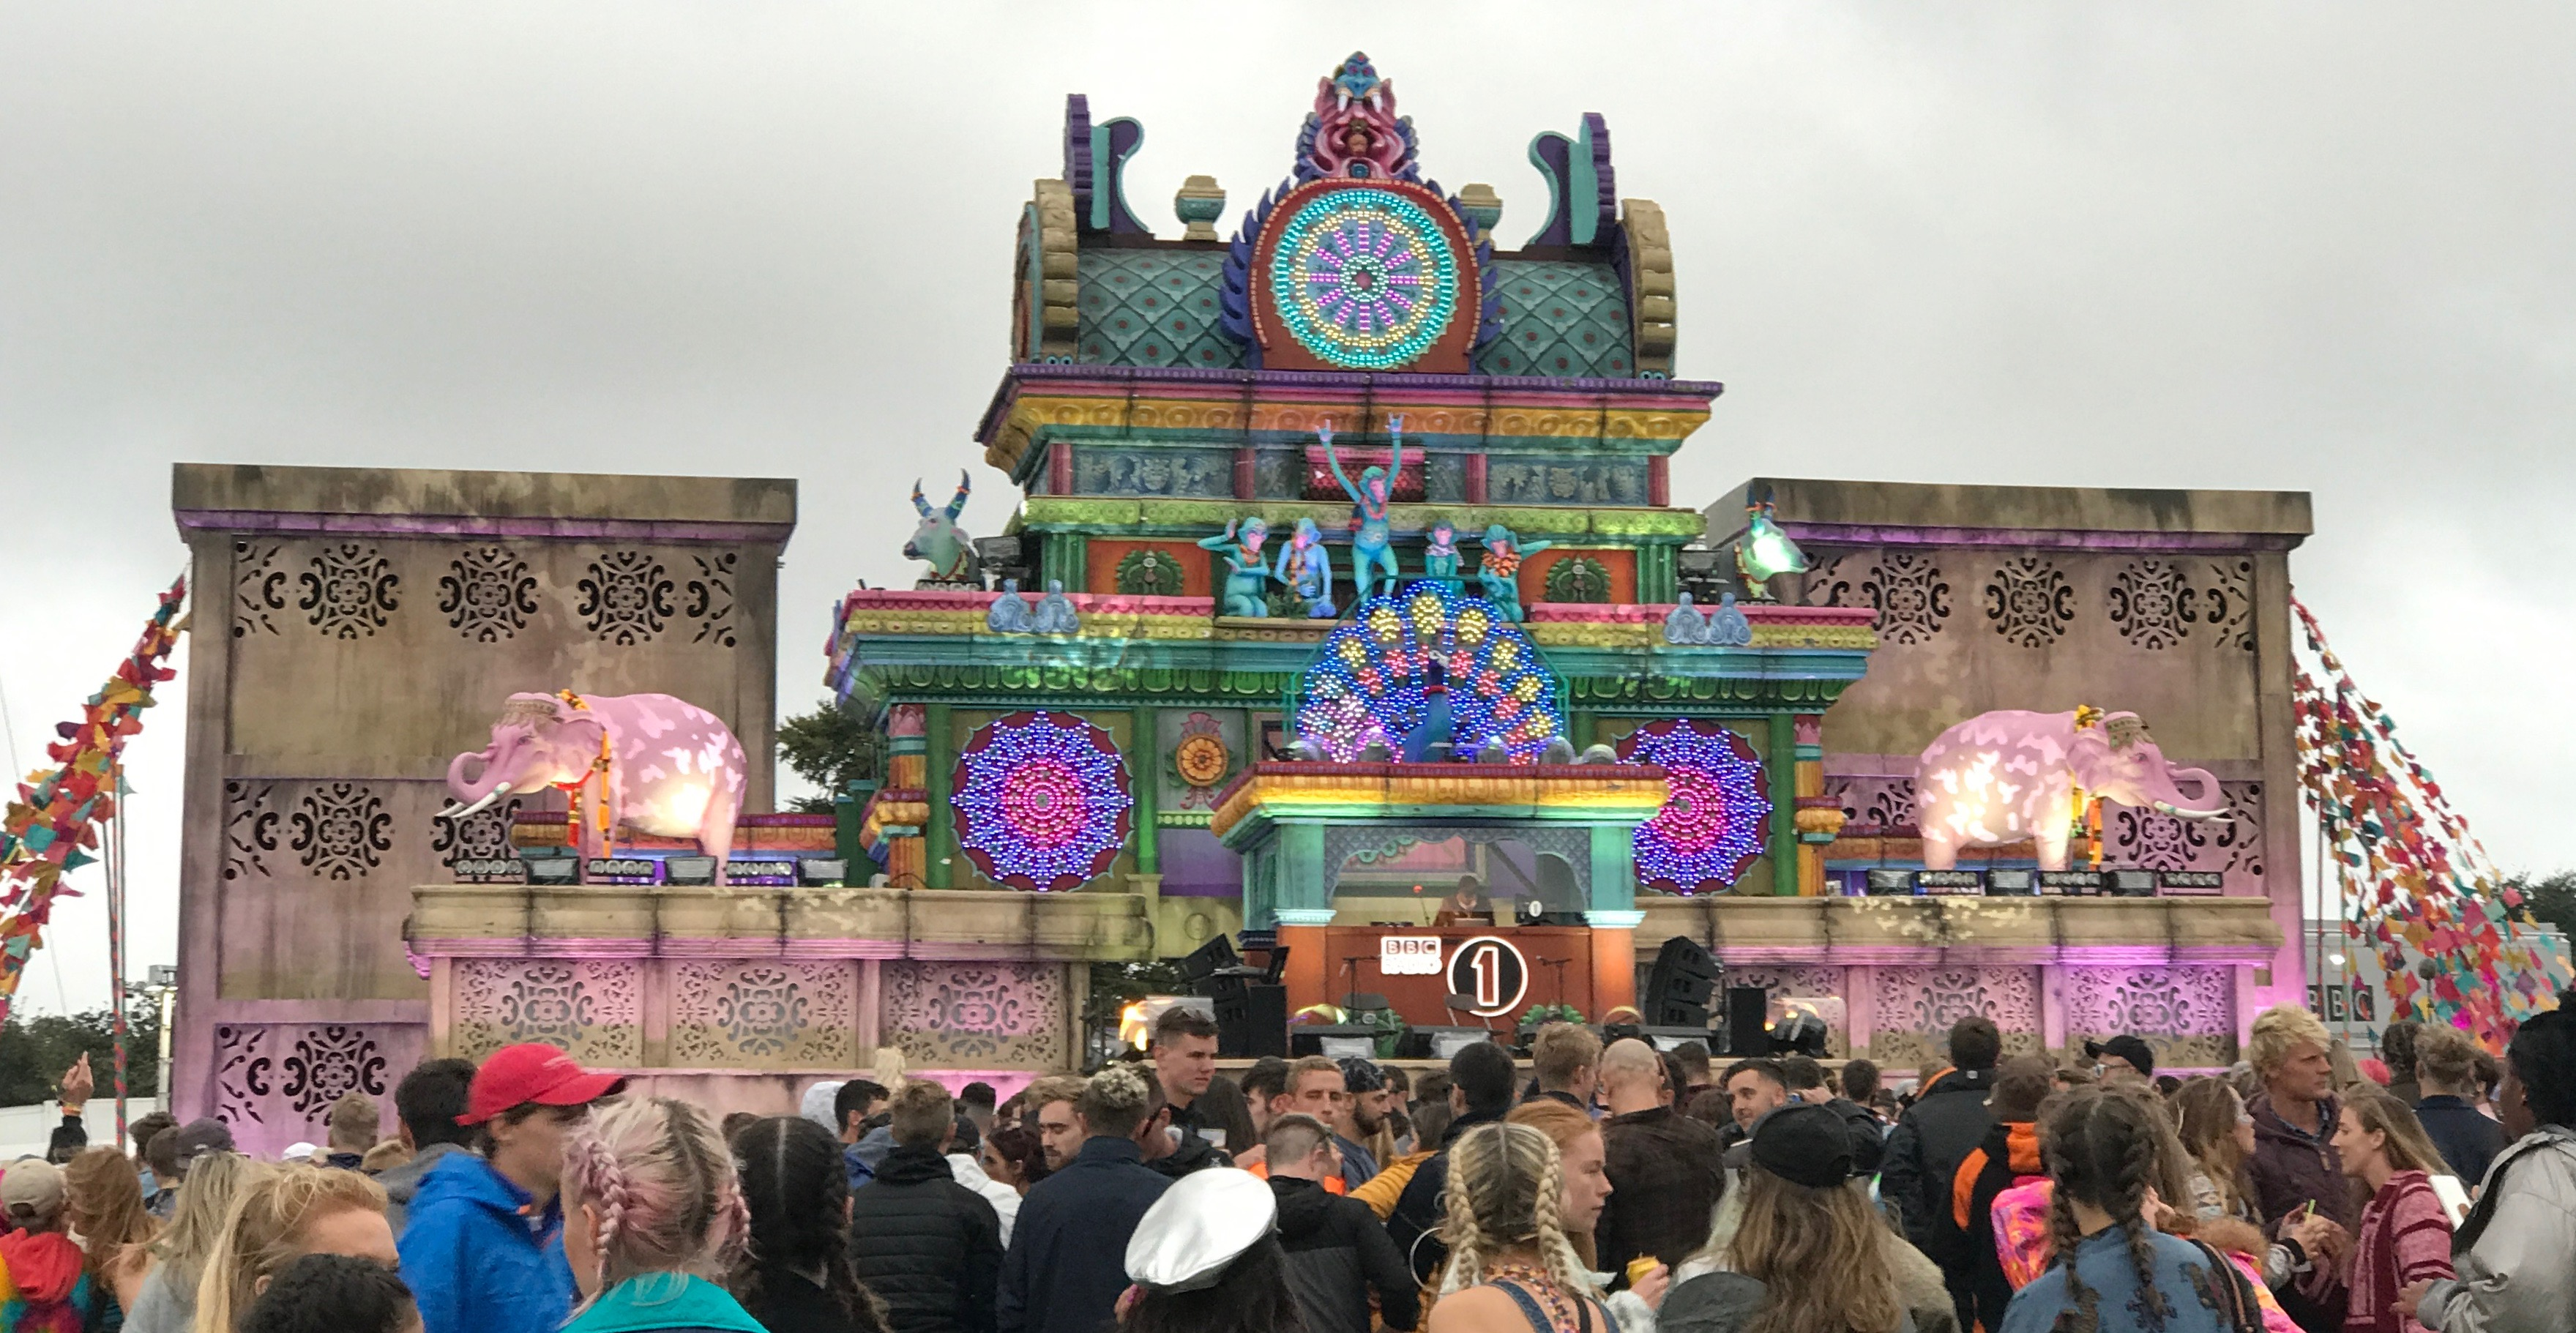 The colourful Bollywood themed Temple Stage at Bestival with Annie Mac live broadcasting on Radio 1 uk music festival